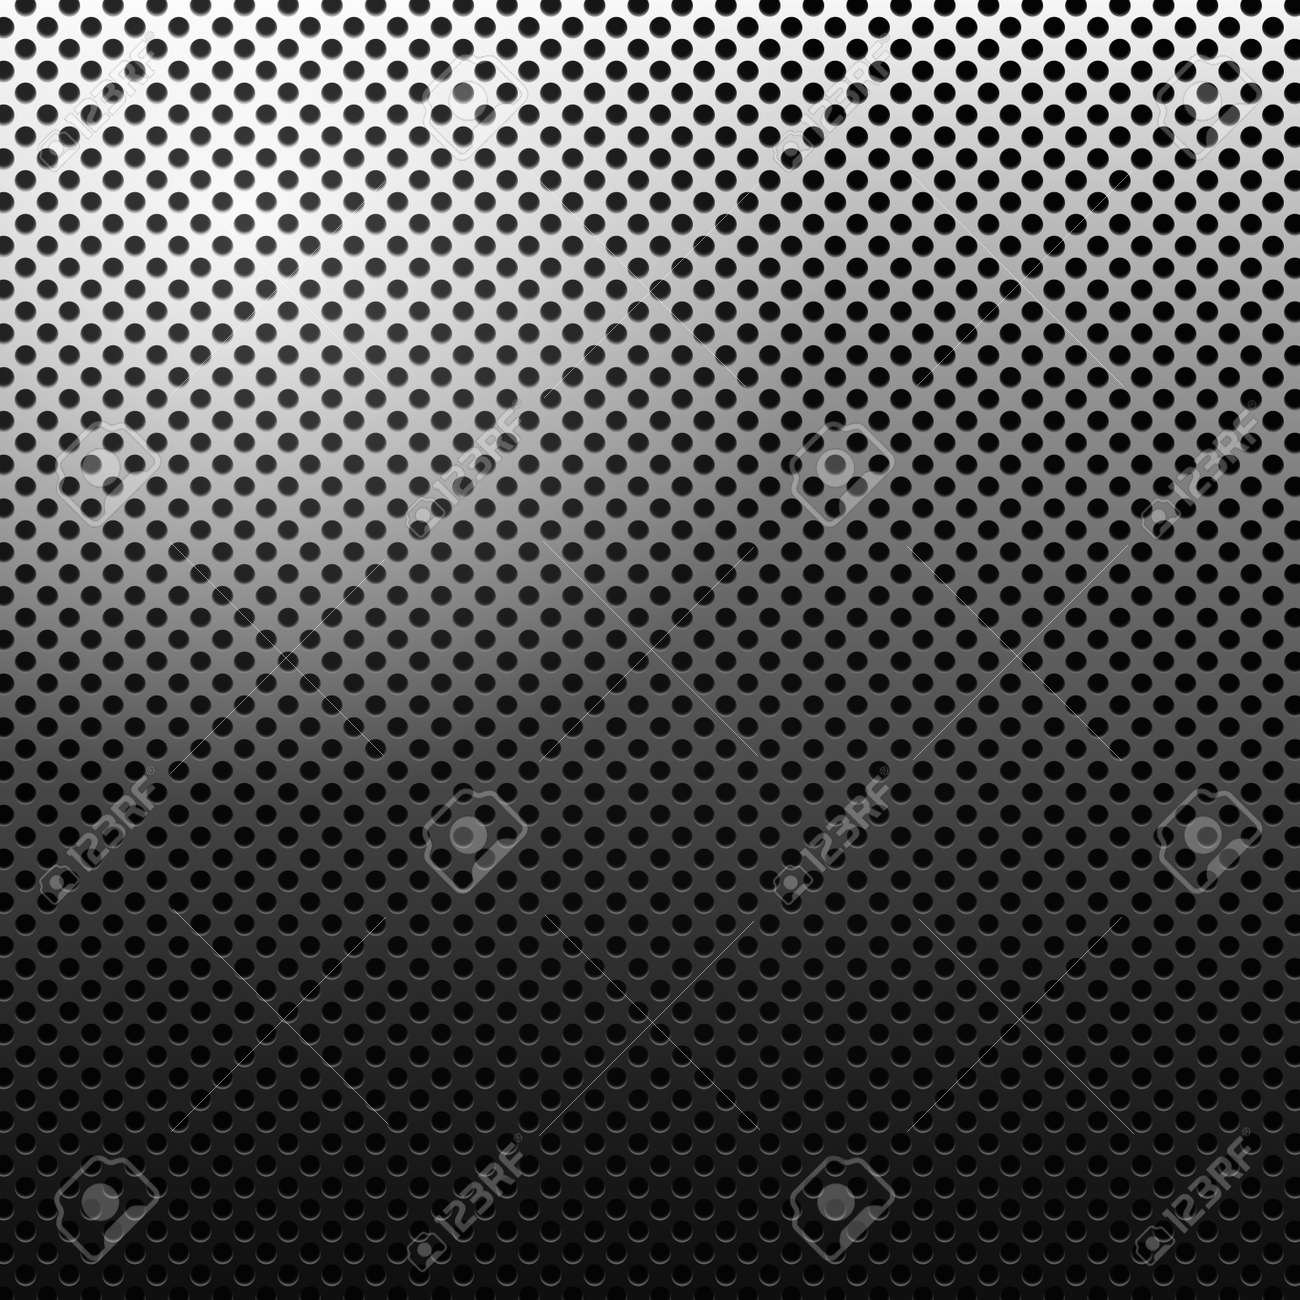 Circle texture metal abstract background with dots Stock Photo - 9970661